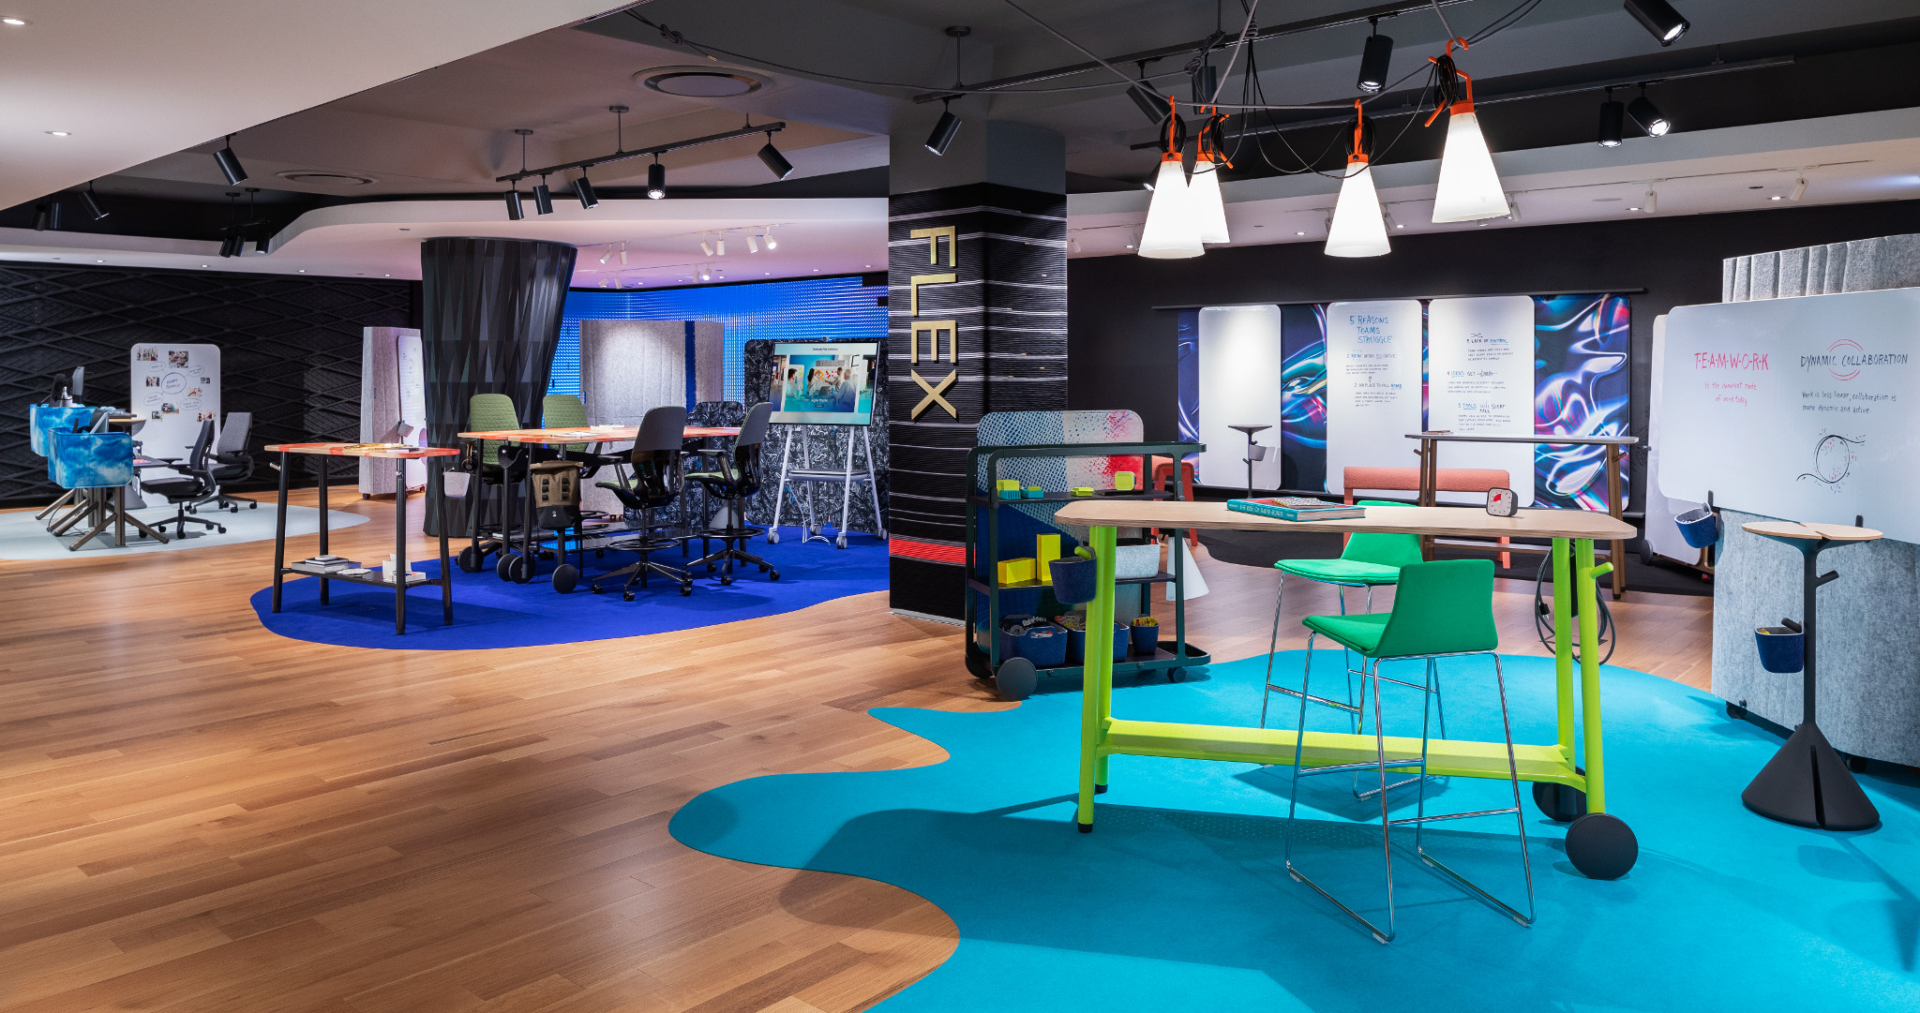 Top Three Steelcase Trends At NeoCon 2019